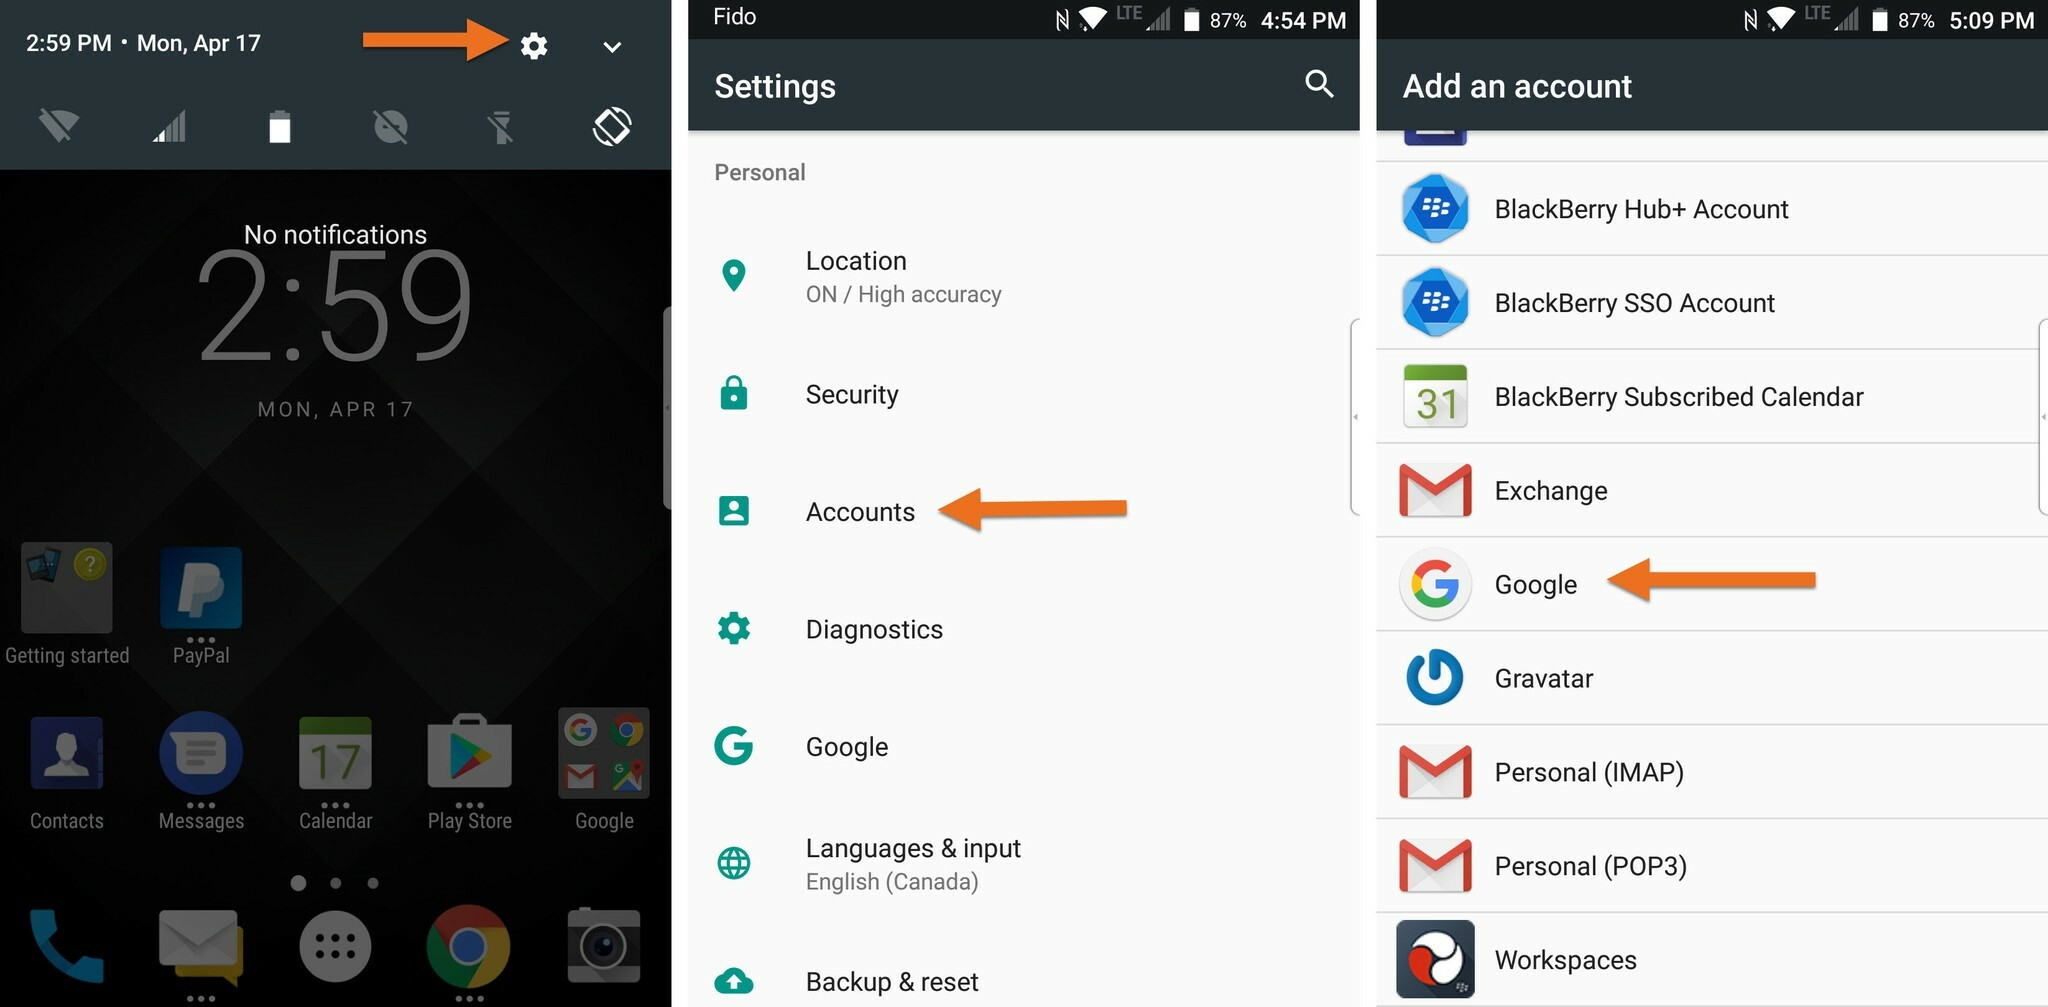 Adding a Google account to the BlackBerry KEYone